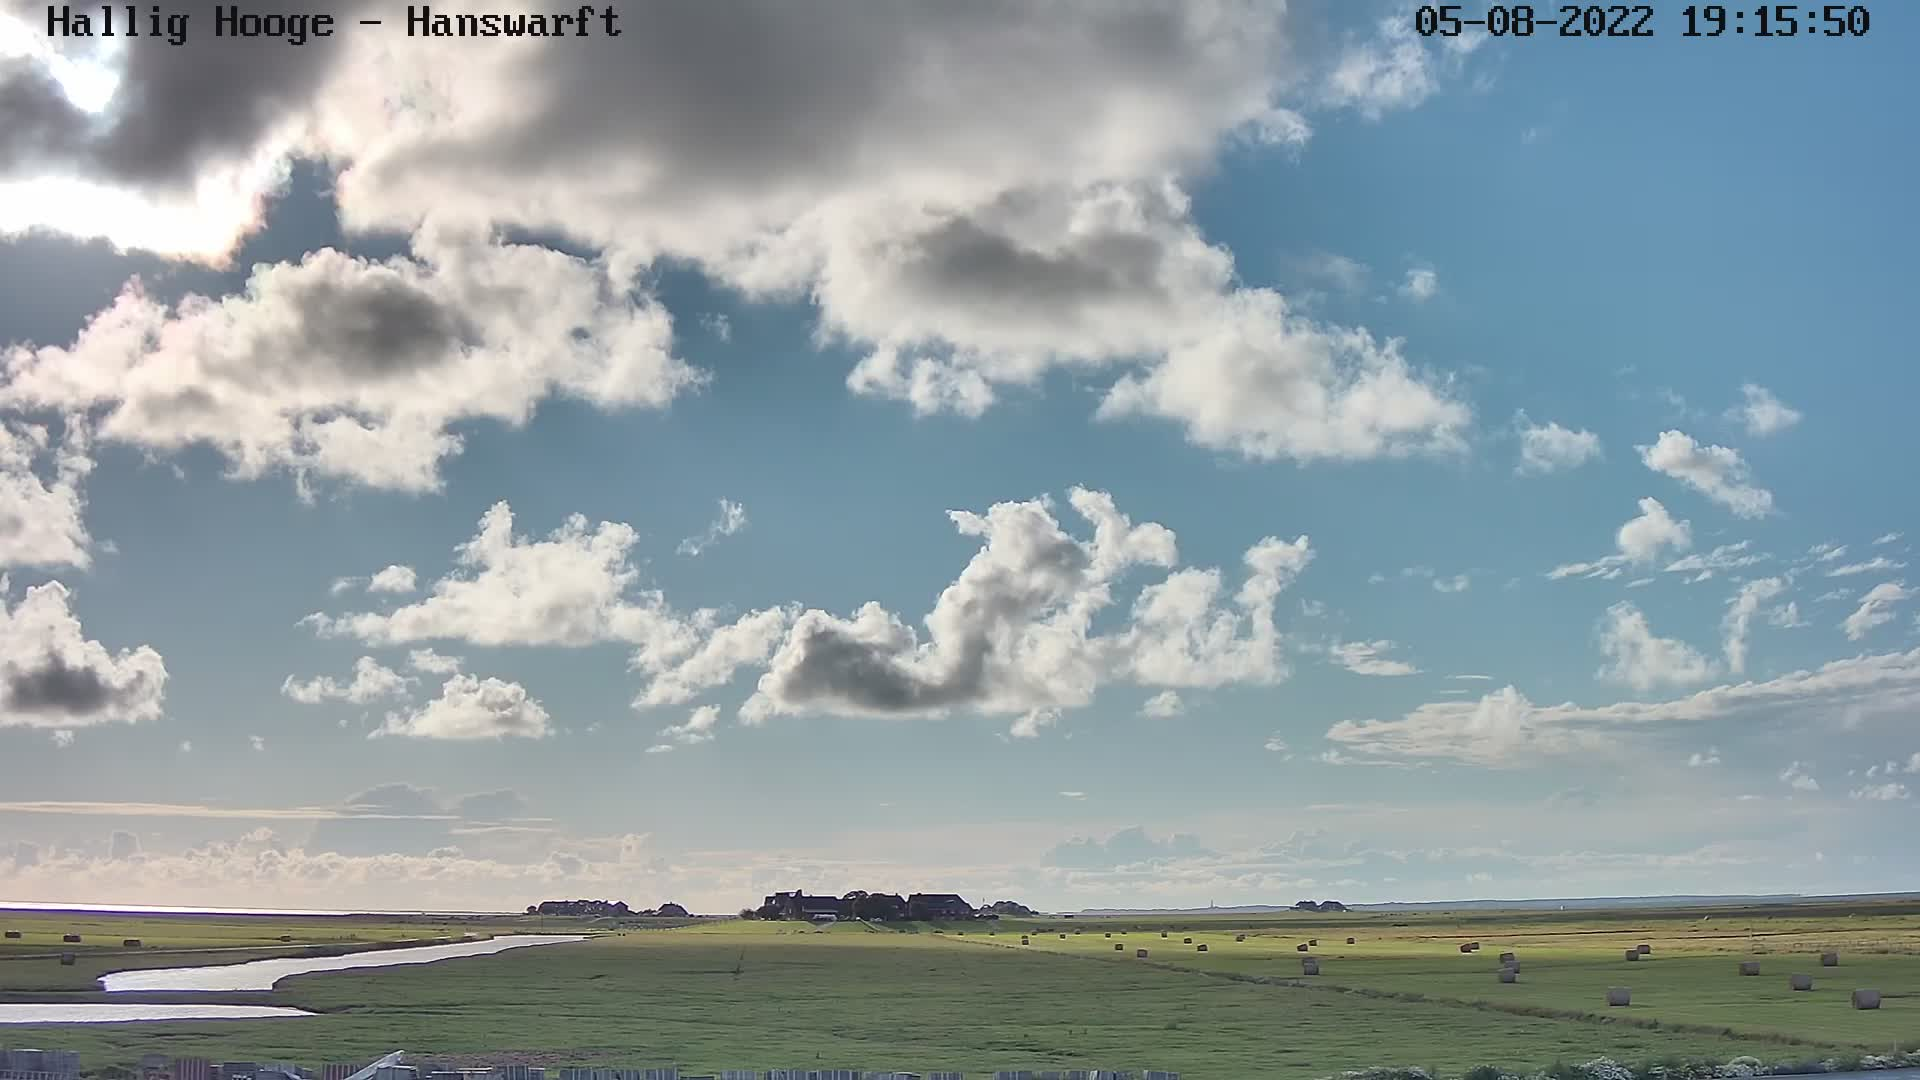 Webcam der Hallig Hooge